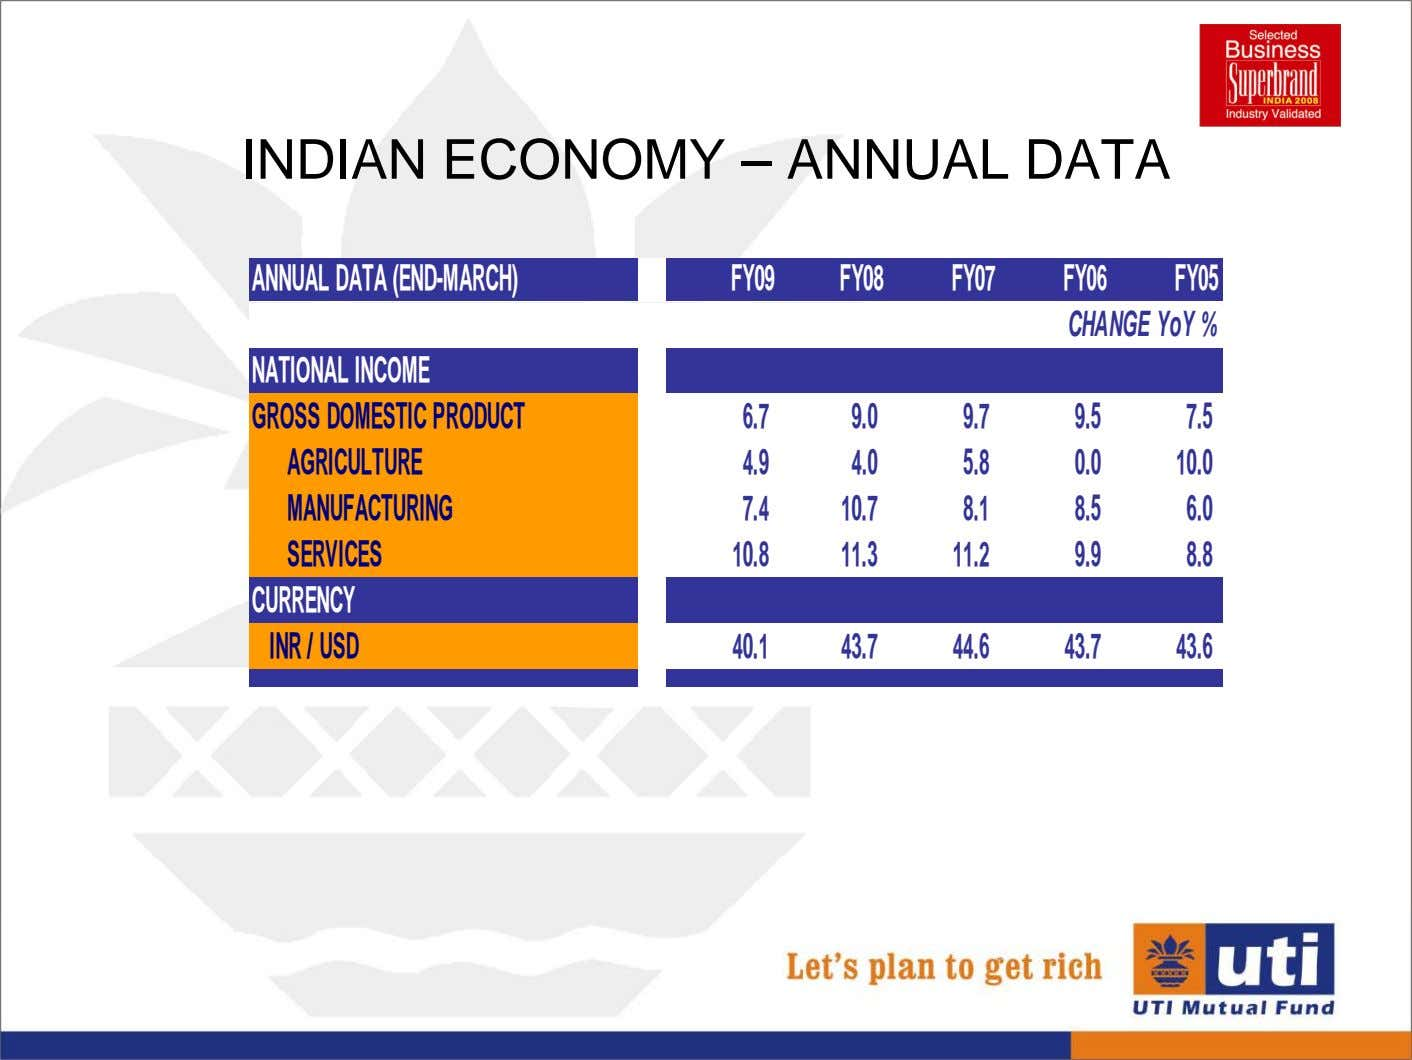 INDIAN ECONOMY – ANNUAL DATA ANNUALDATA(END-MARCH) FY09 FY08 FY07 FY06 FY05 CHANGEYoY% NATIONALINCOME